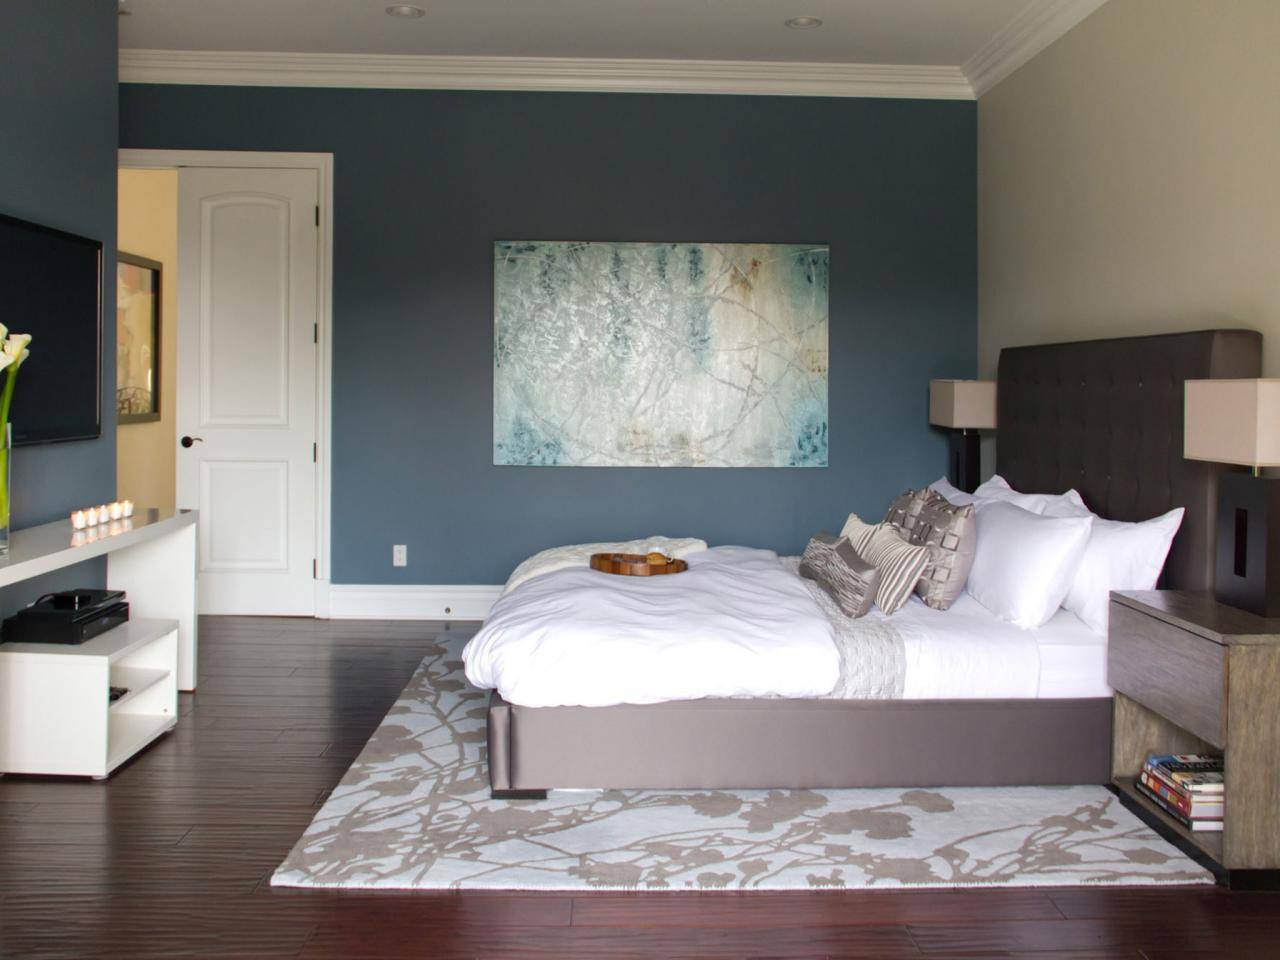 Master Bedroom Flooring: Pictures, Options & Ideas